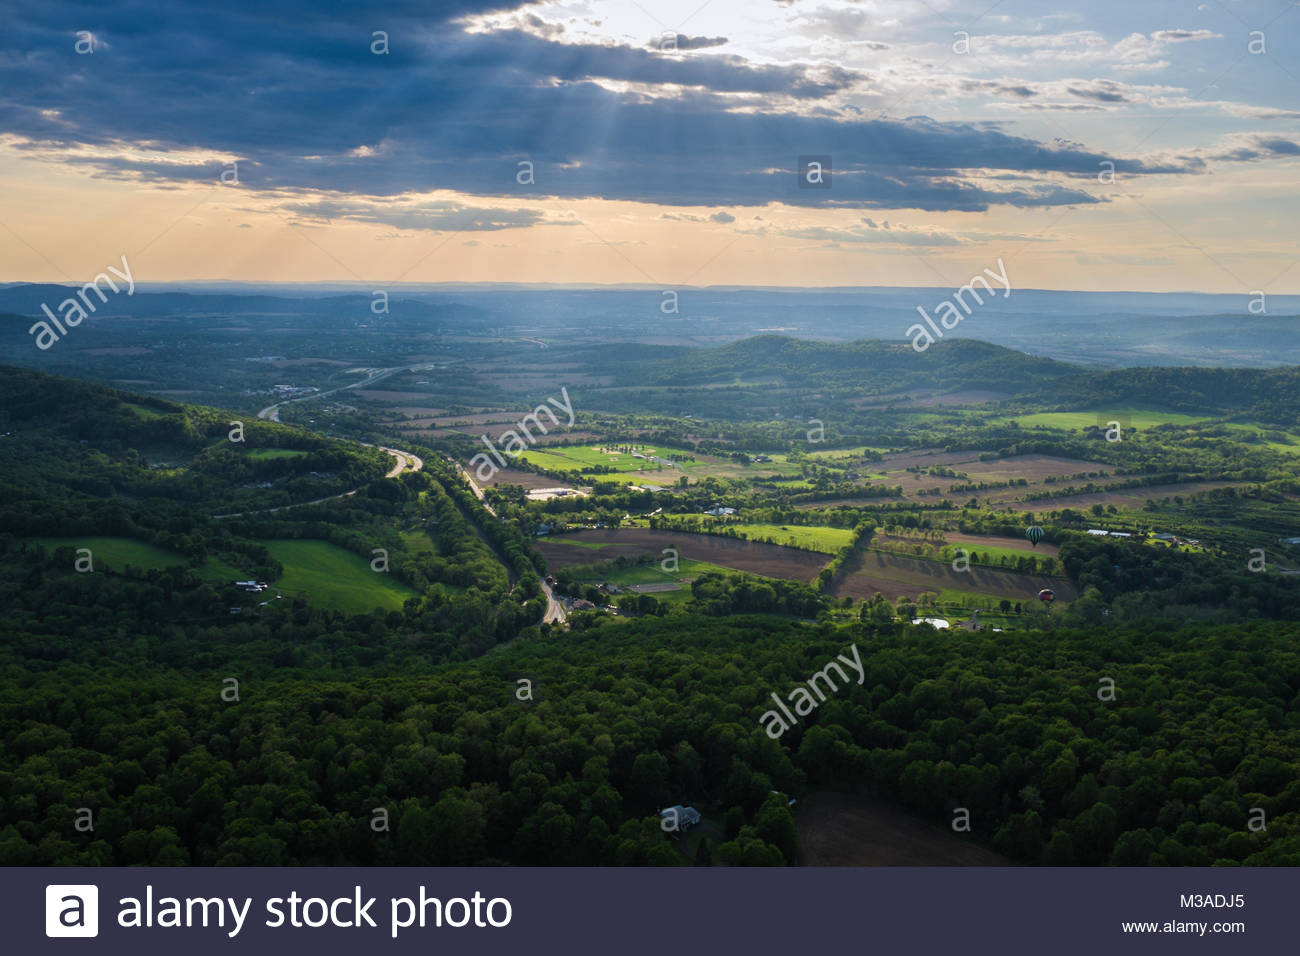 New Jersey - Stock Image